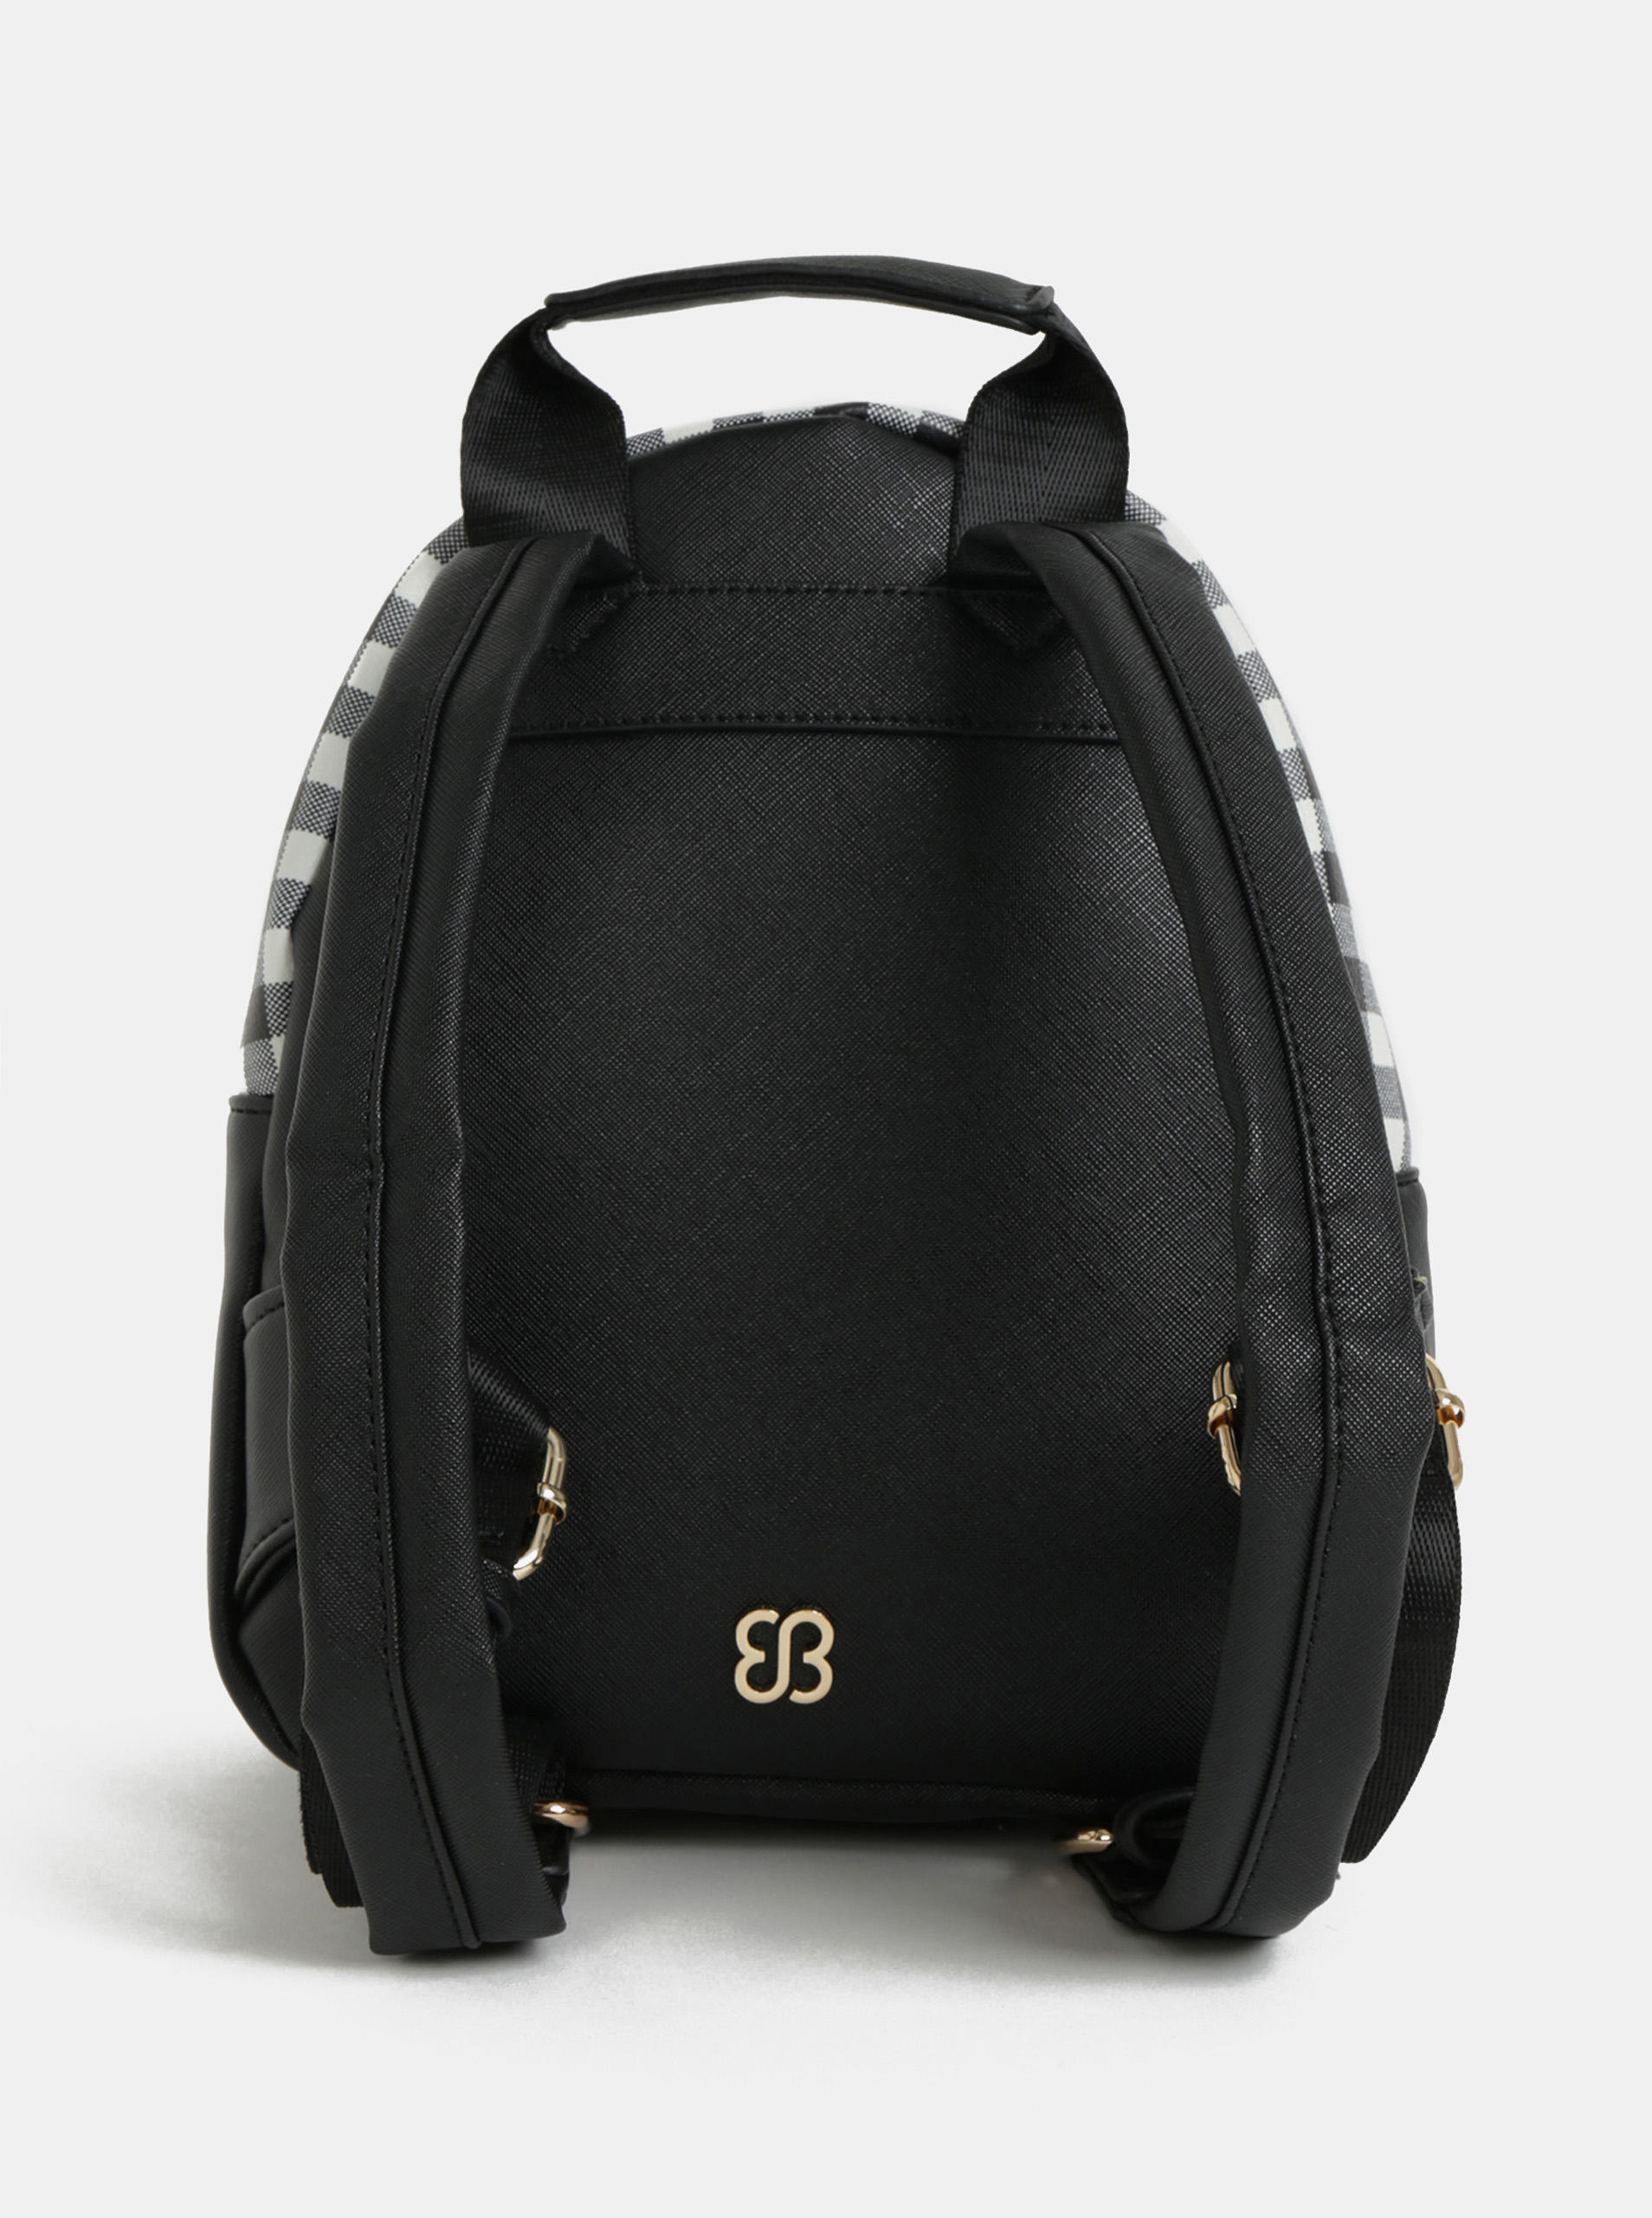 Bessie London white and black checkered backpack